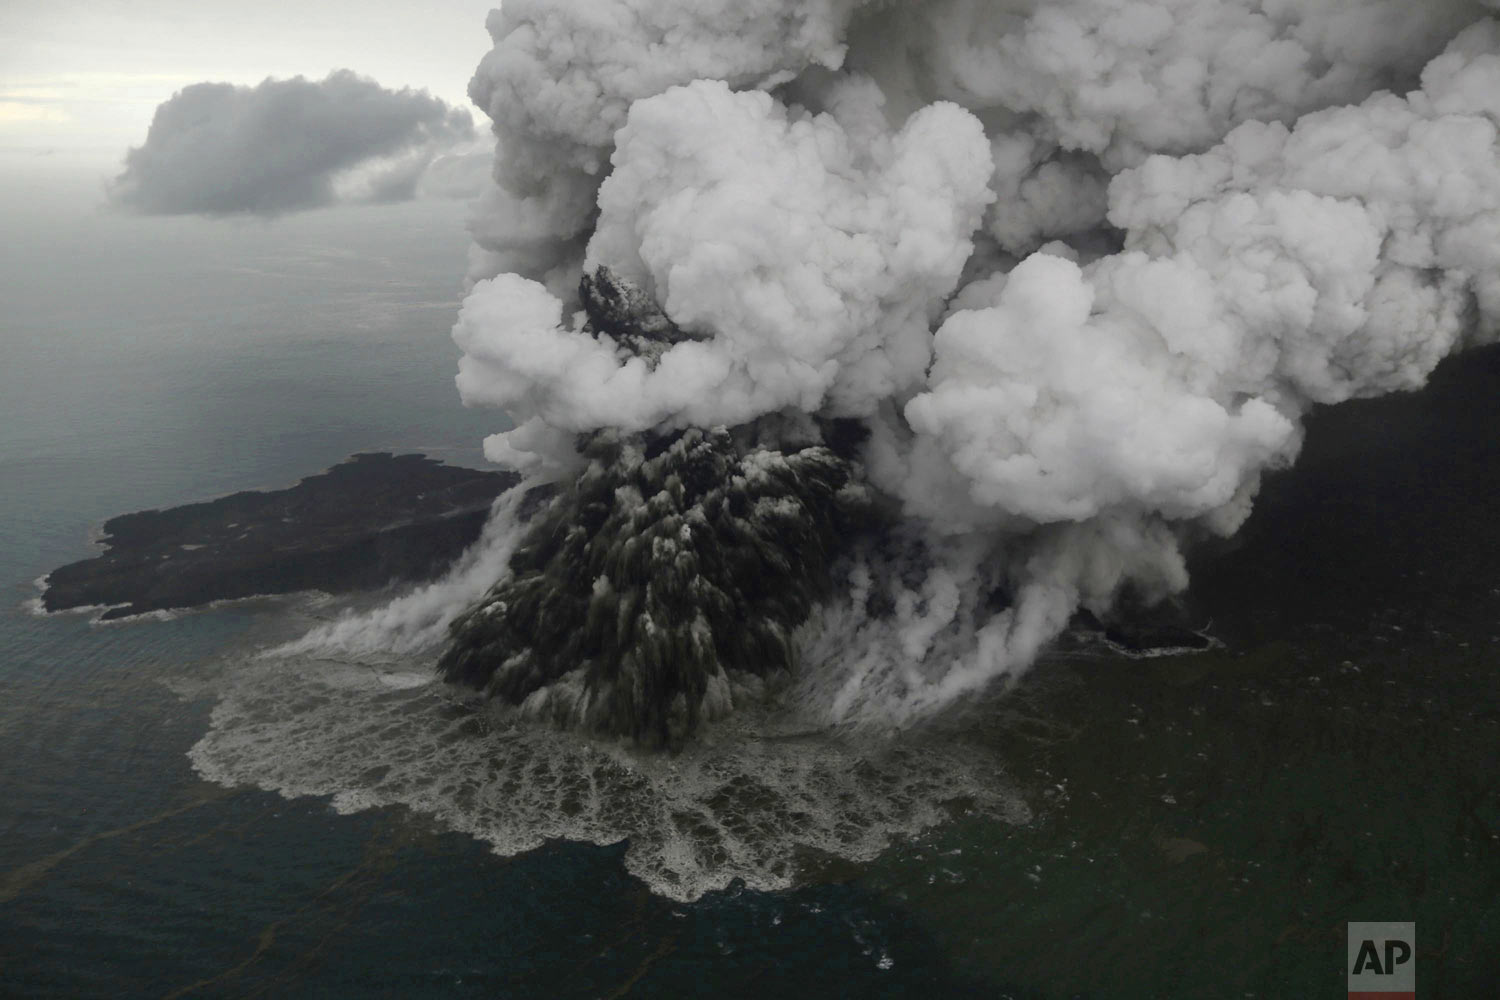 Plumes rise from Mount Anak Krakatau as it erupts in the Java Strait, Indonesia on Sunday, Dec. 23, 2018. A deadly tsunami followed an eruption and apparent undersea landslide on the volcano, gushing ashore without warning during a busy holiday weekend. (Nurul Hidayat/Bisnis Indonesia via AP)